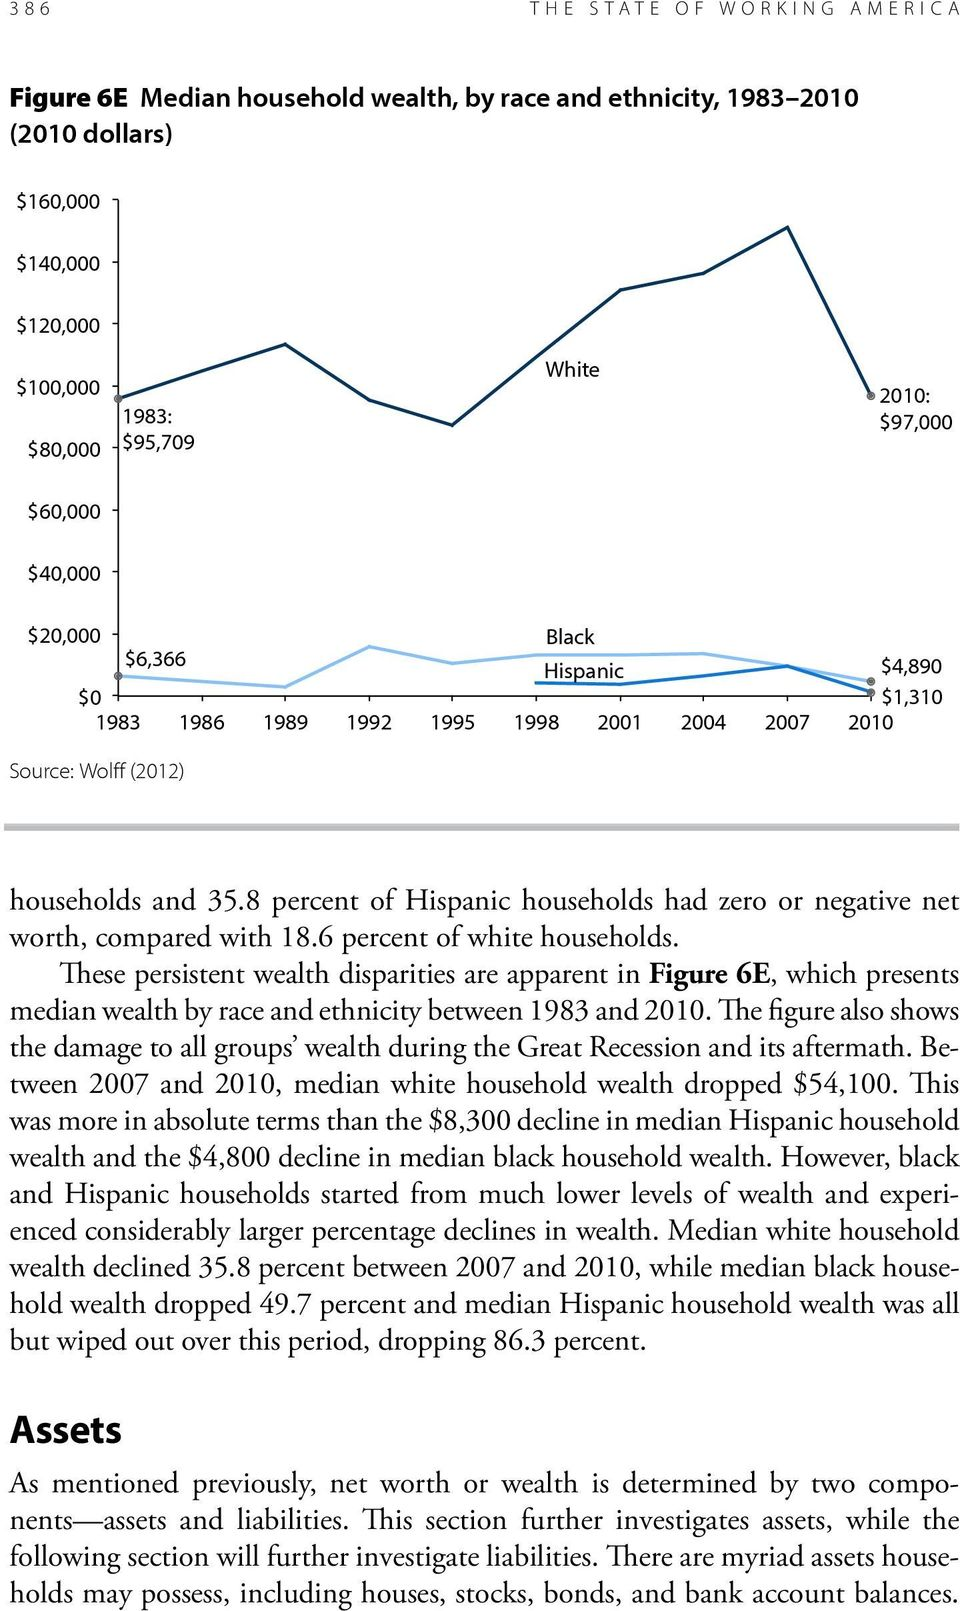 The figure also shows the damage to all groups wealth during the Great Recession and its aftermath. Between 2007 and 2010, median white household wealth dropped $54,100.